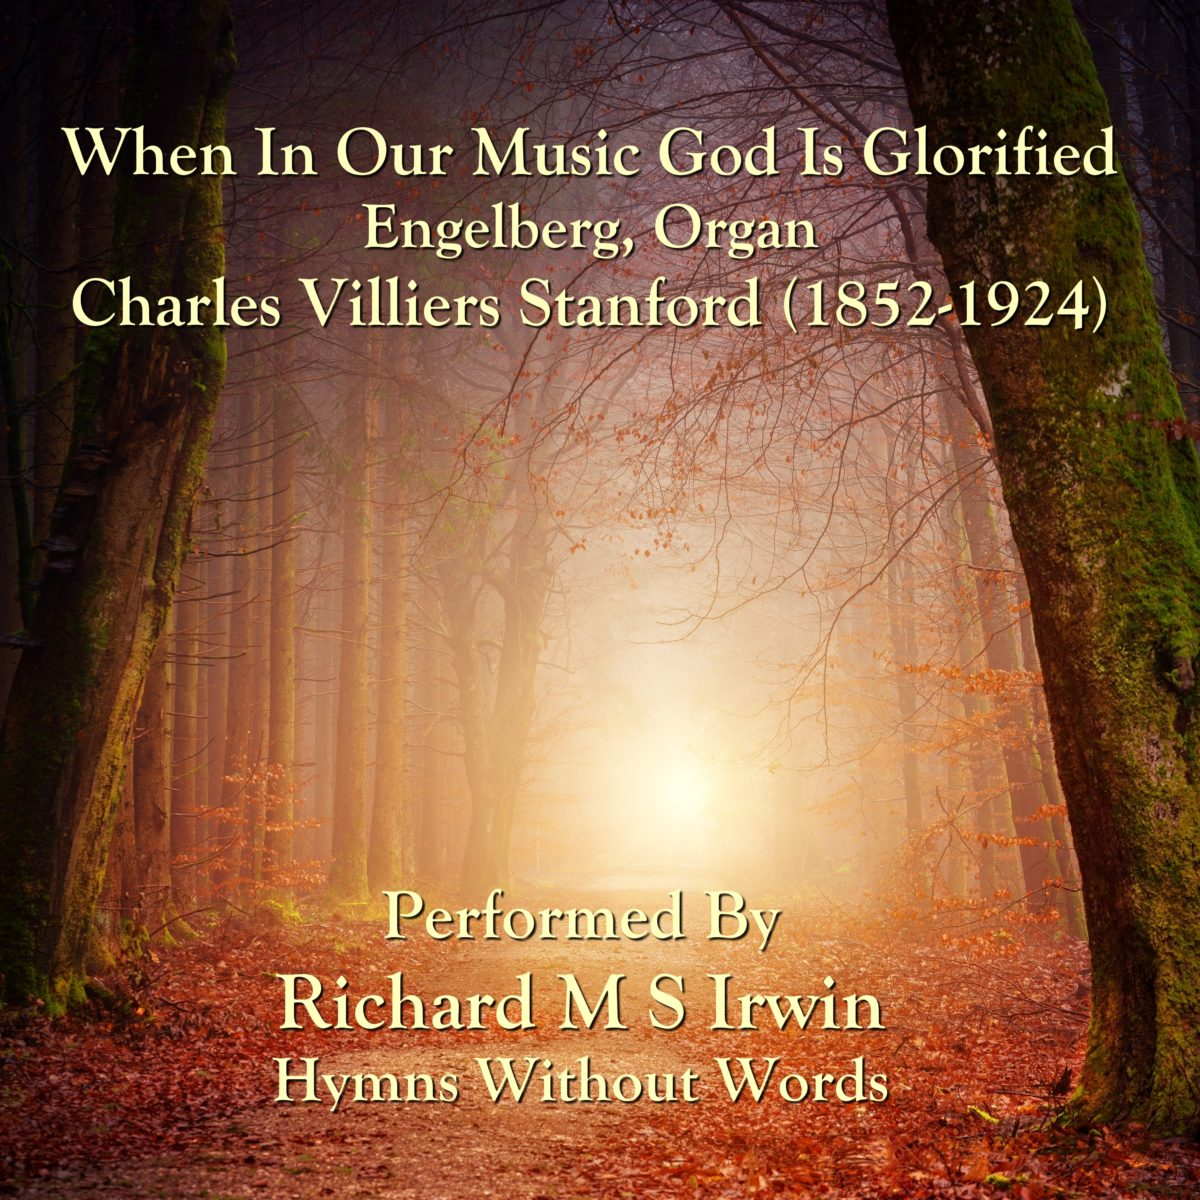 When In Our Music God Is Glorified (Engelberg, Organ, 5 Verses)